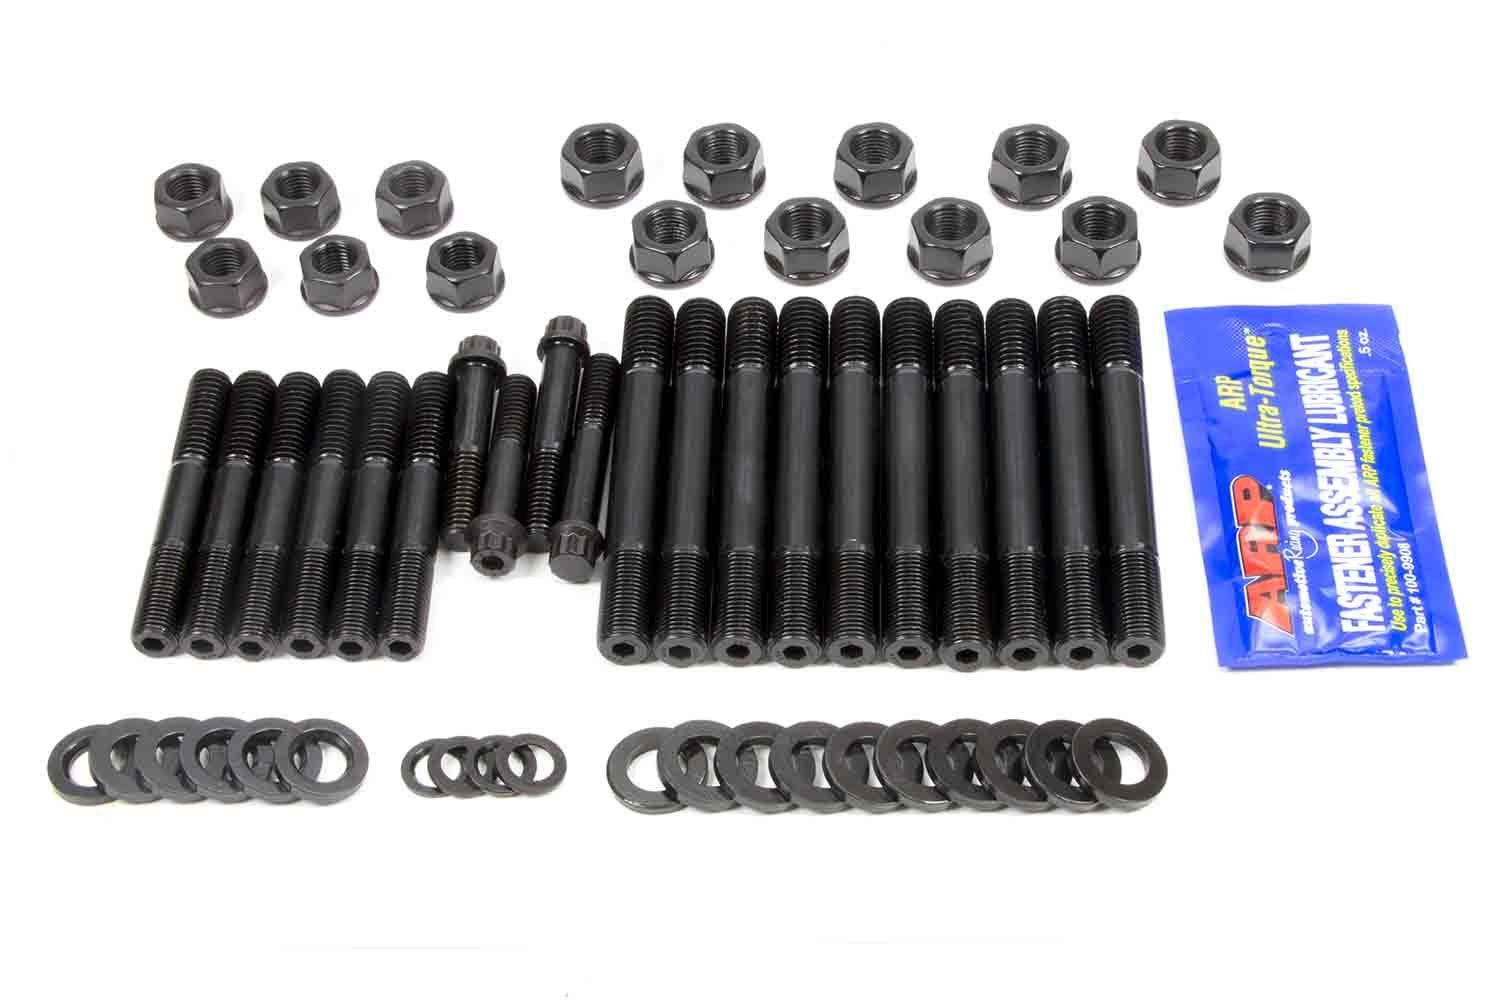 ARP 234-5503 Main Stud Kit for Small Block Chevy